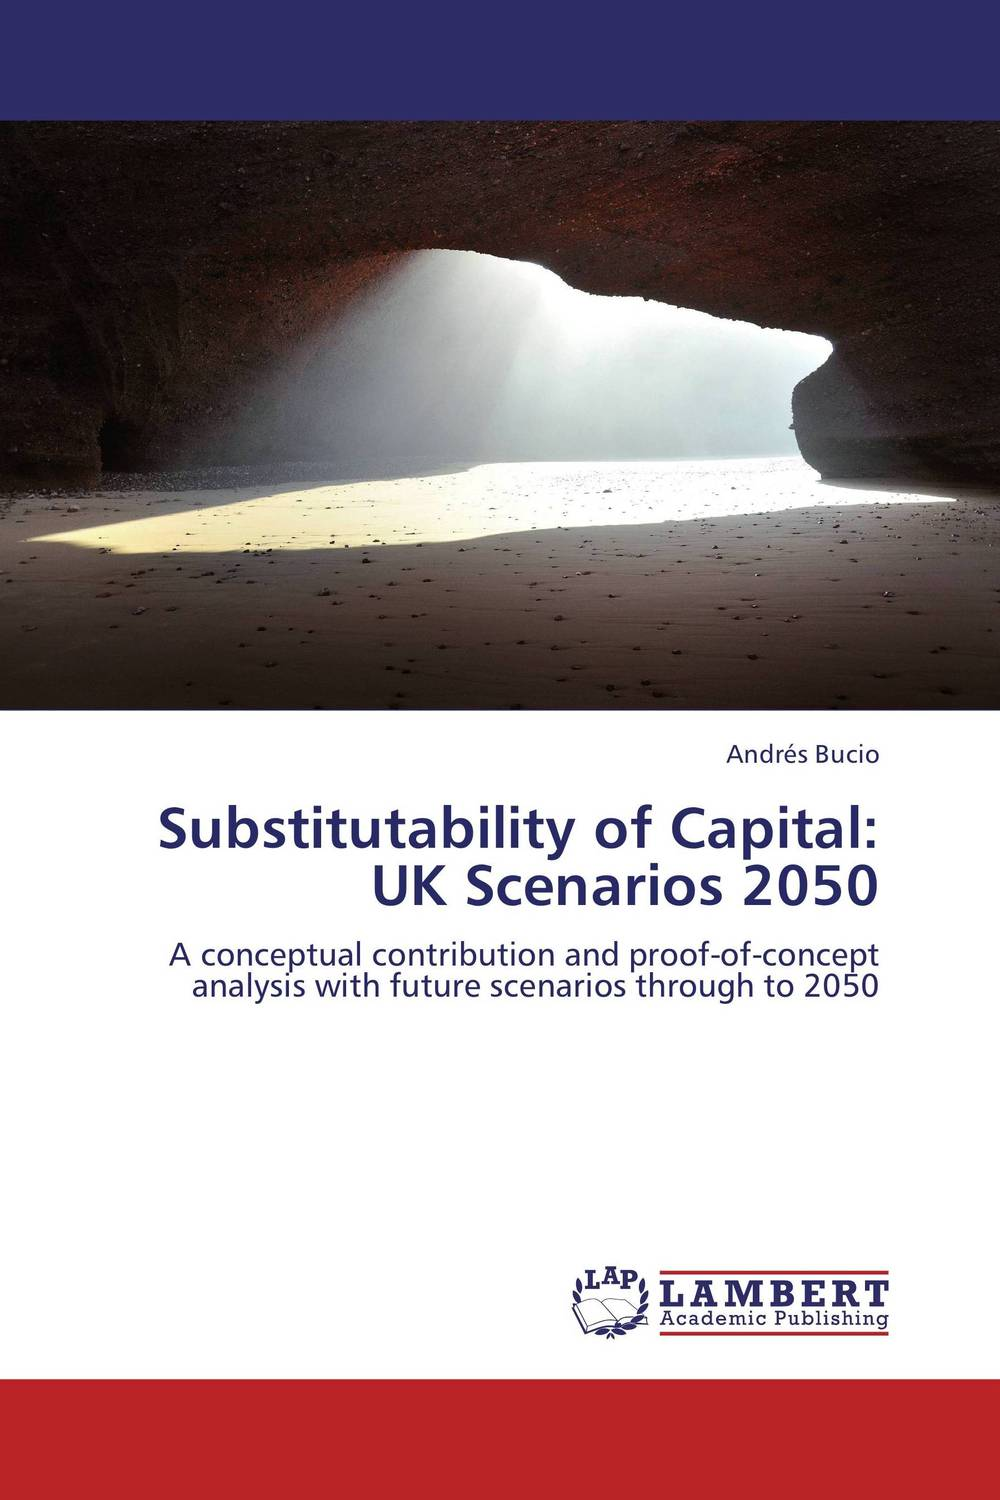 Substitutability of Capital: UK Scenarios 2050 i manev social capital and strategy effectiveness an empirical study of entrepreneurial ventures in a transition economy